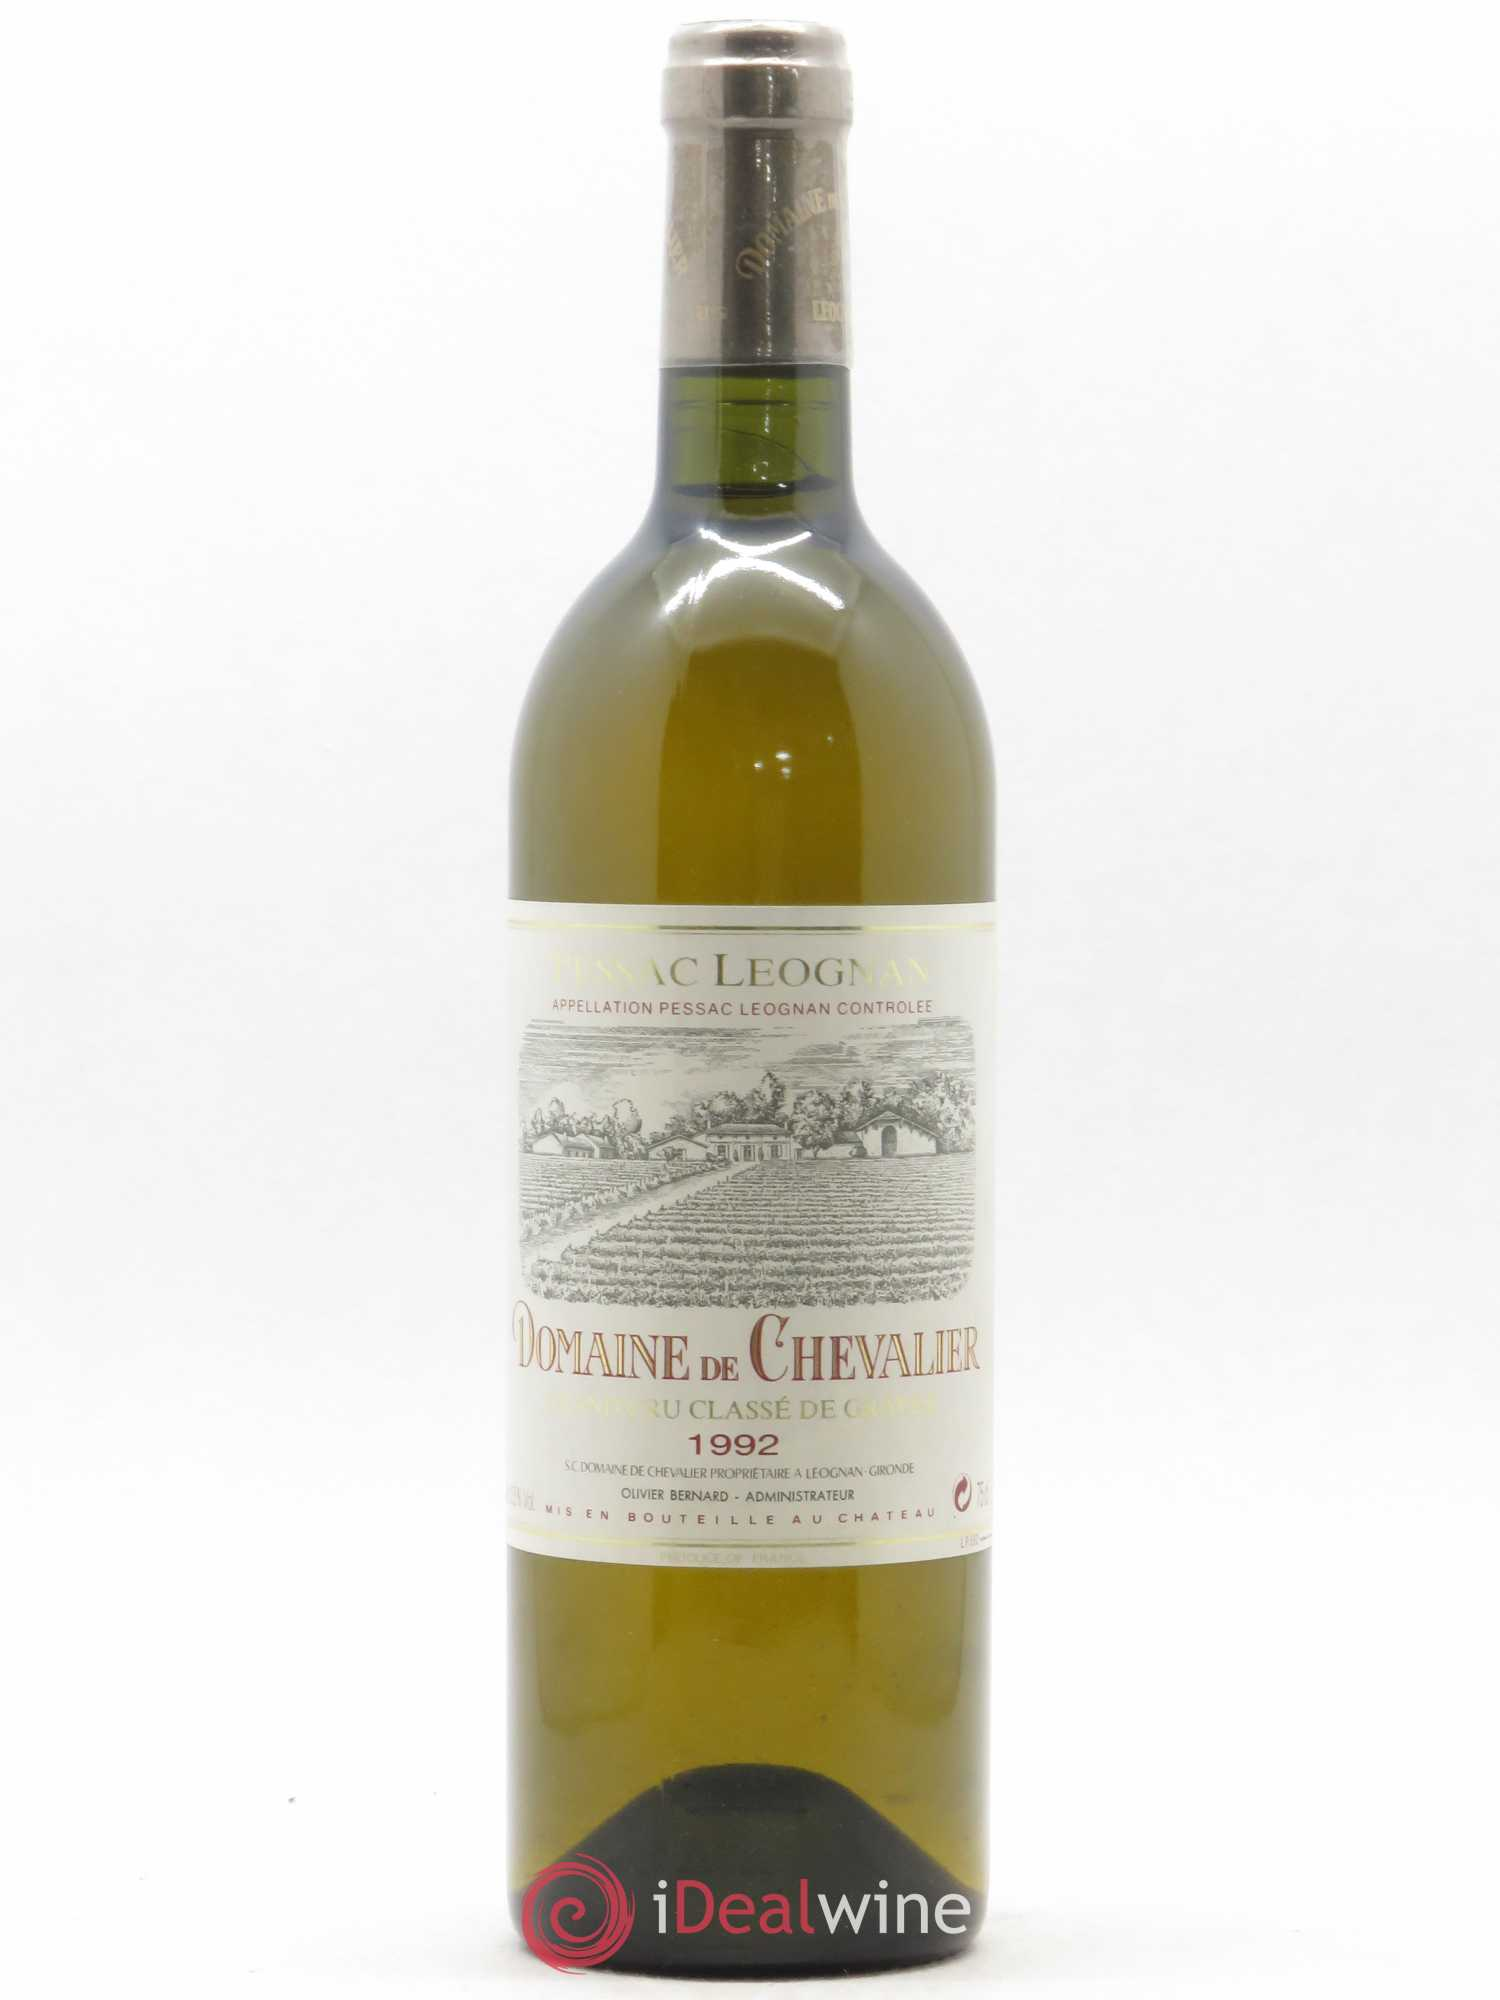 Domaine de Chevalier Cru Classé de Graves  1992 - Lot of 1 Bottle